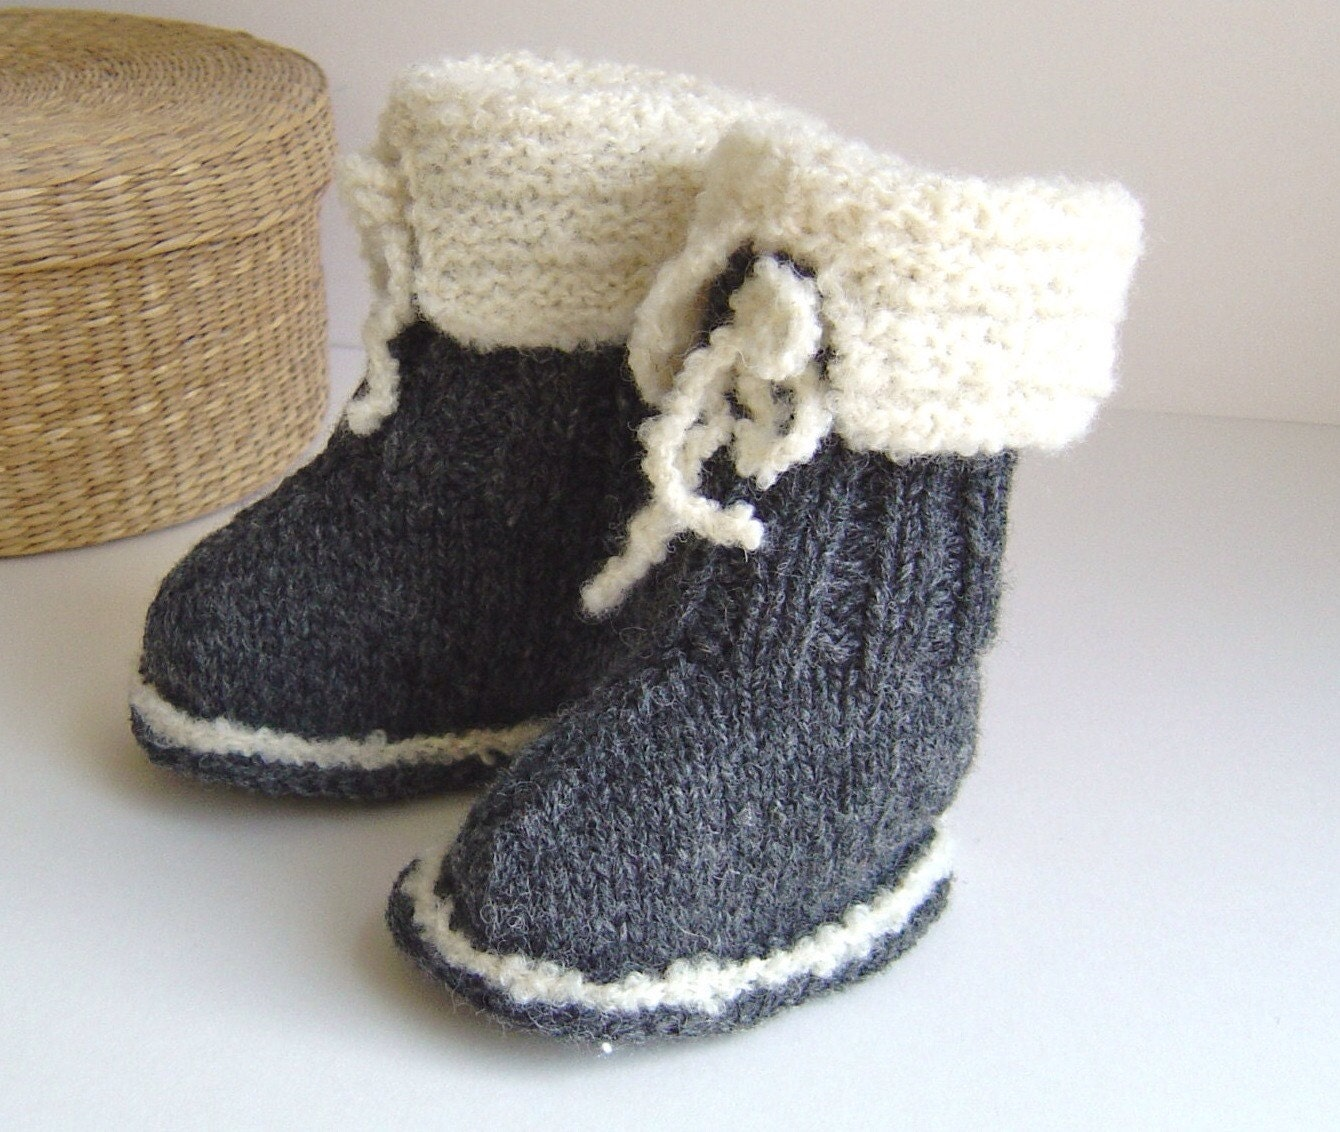 Knitted Baby Uggs Pattern : Knitting PATTERN Ugg Style Baby Boots Easy Knitting pattern